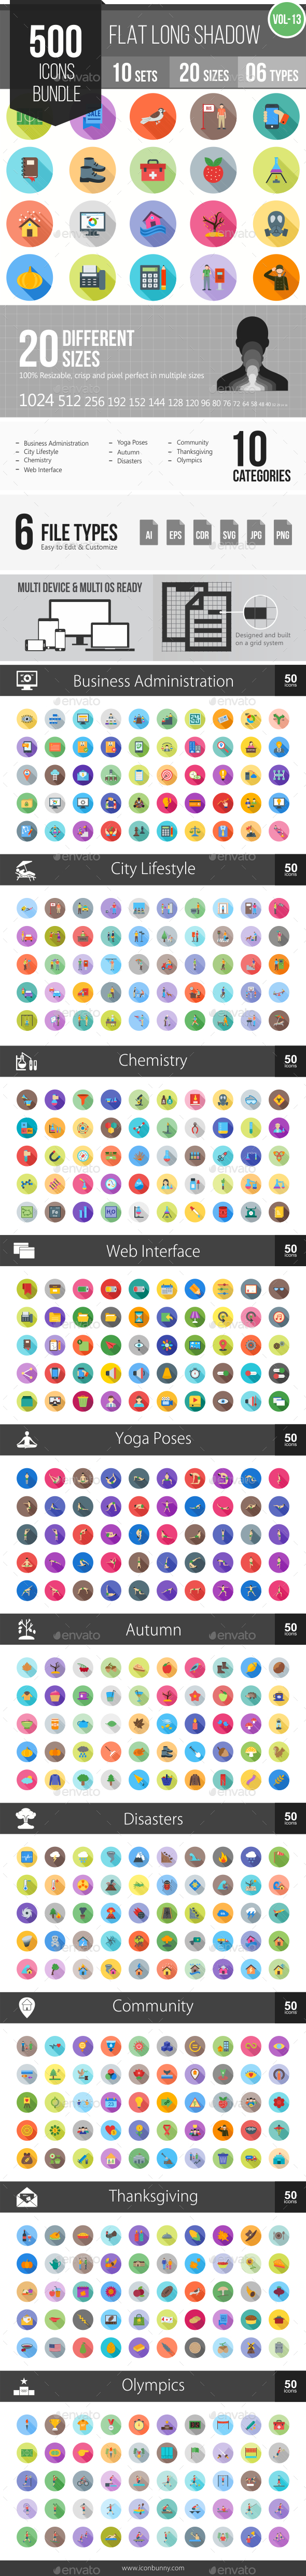 500 Vector Flat Shadowed Icons Bundle (Vol-13) - Icons